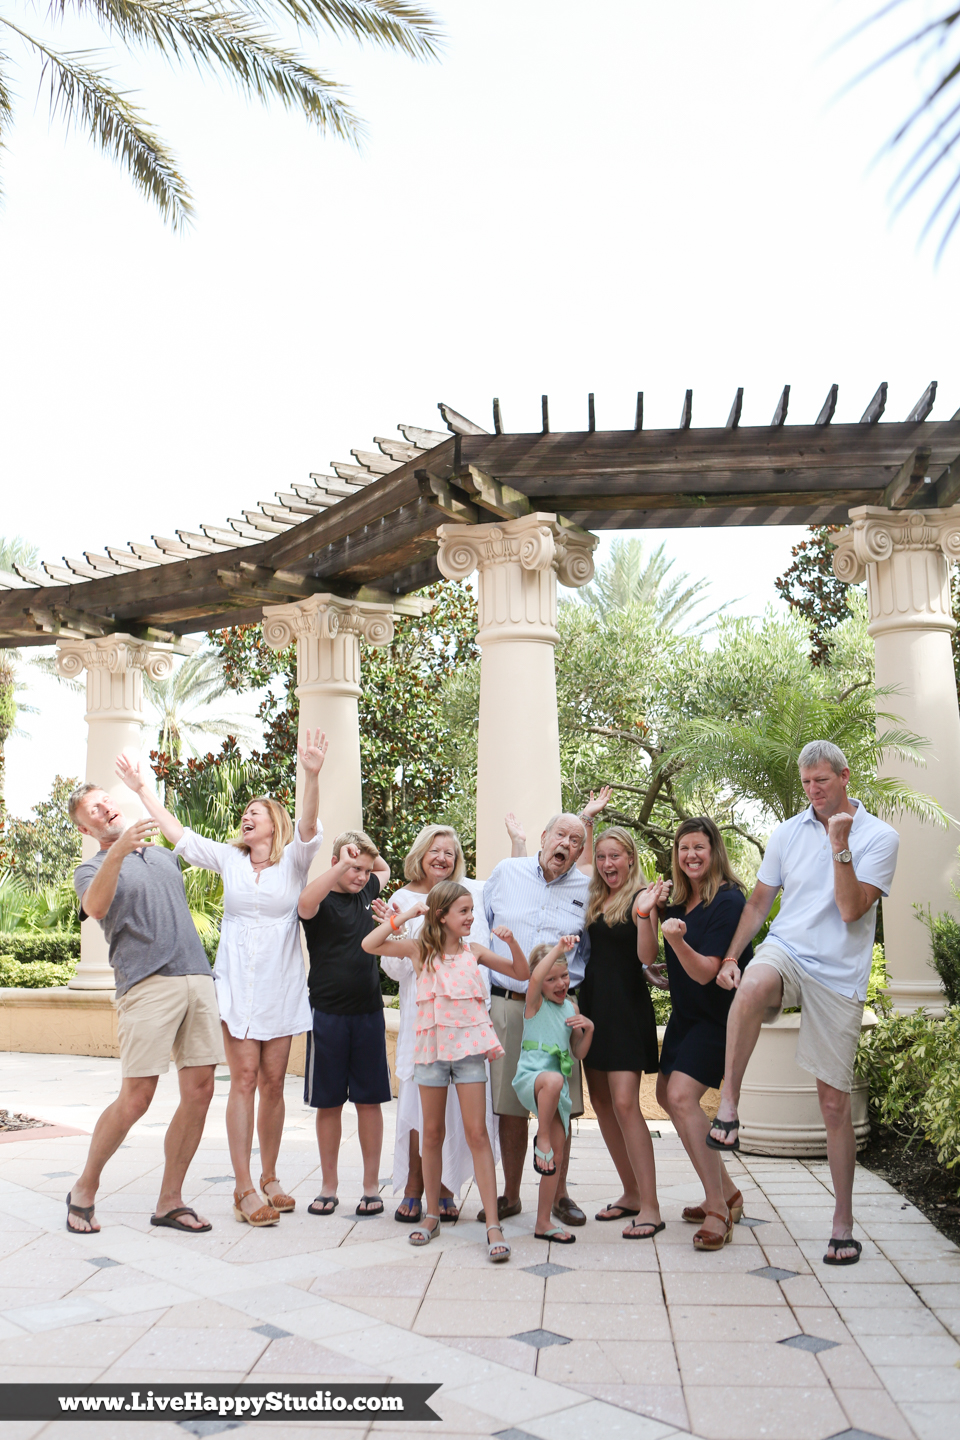 Roy-family-photography-orlando-ritz-grand-lakes-www.livehappystudio.com-4.jpg